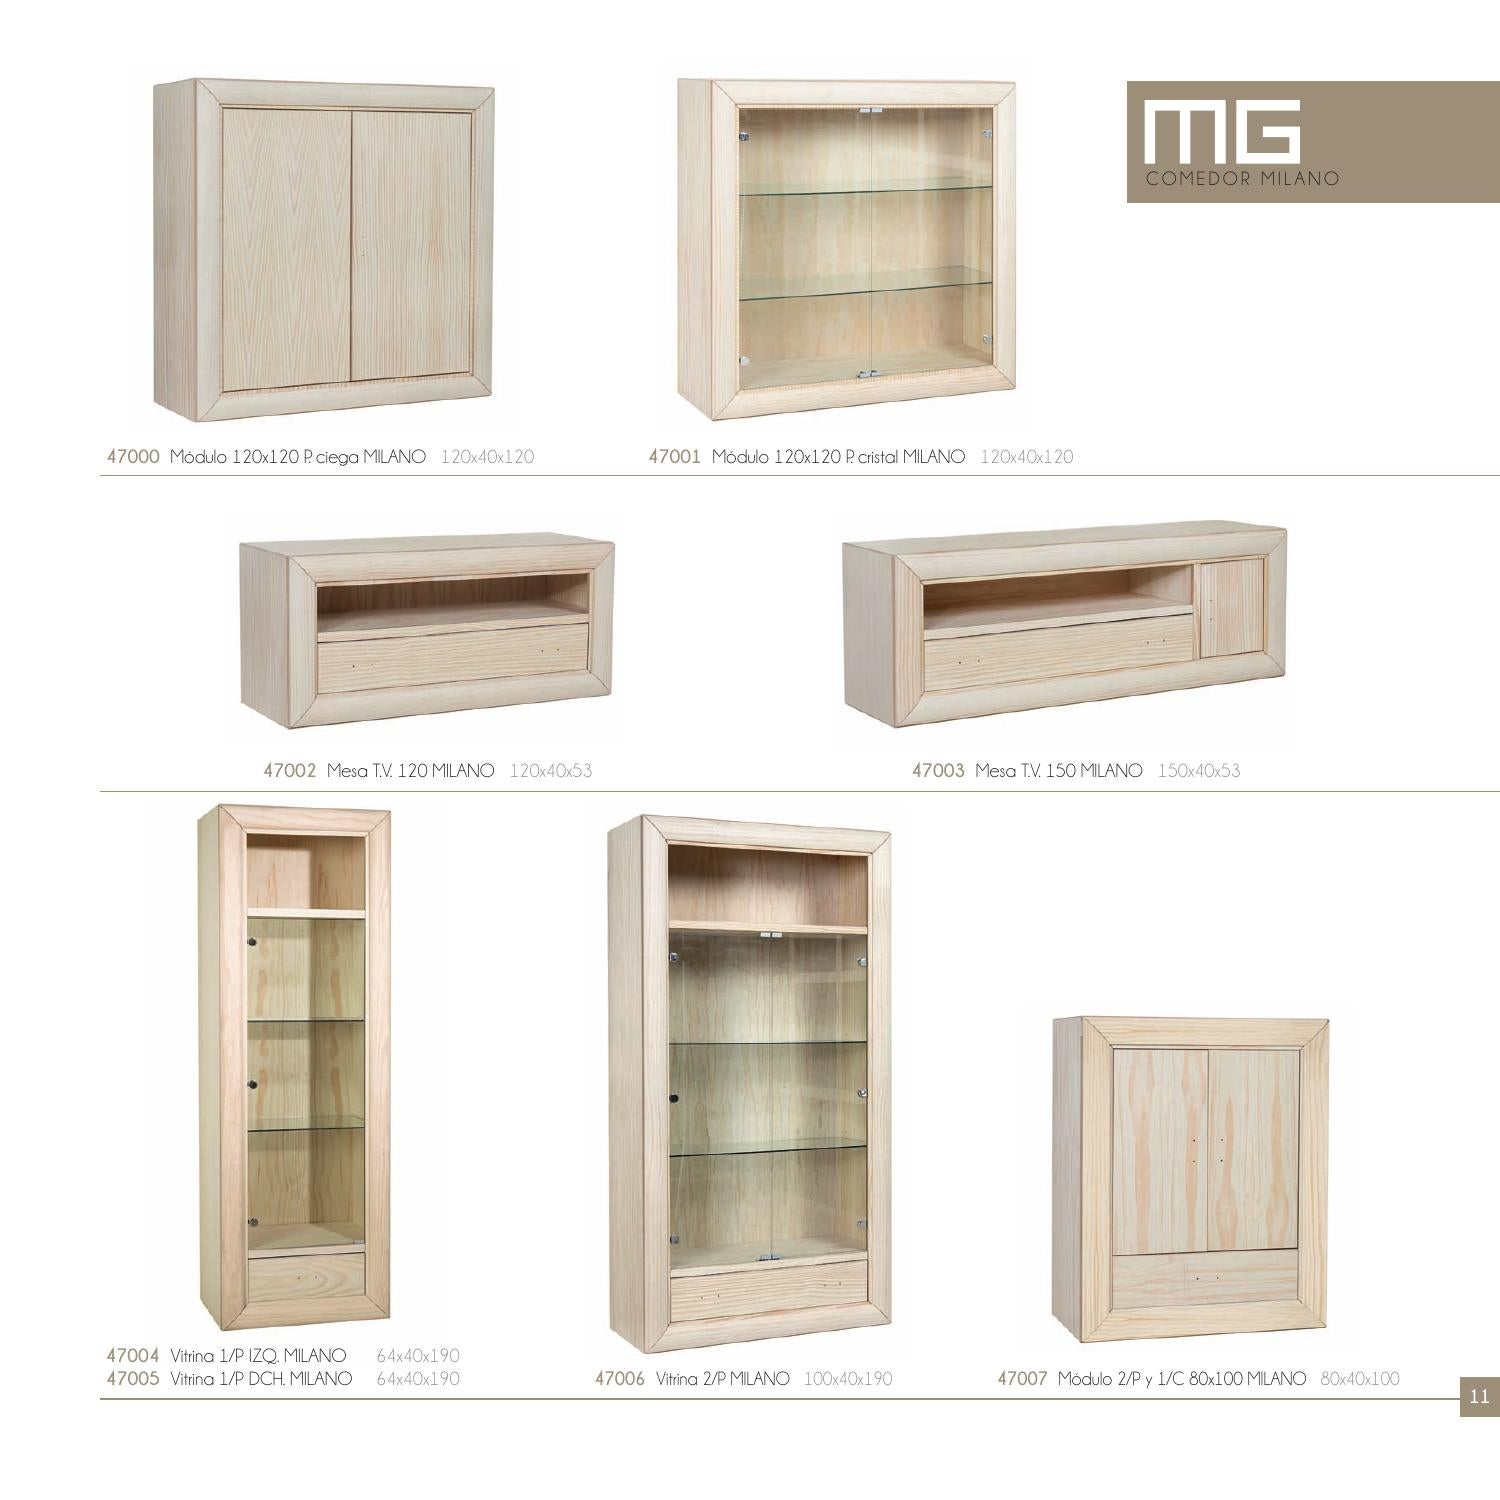 Muebles Guerrero Catalogo Crudo 2015 By Muebles Guerrero Issuu